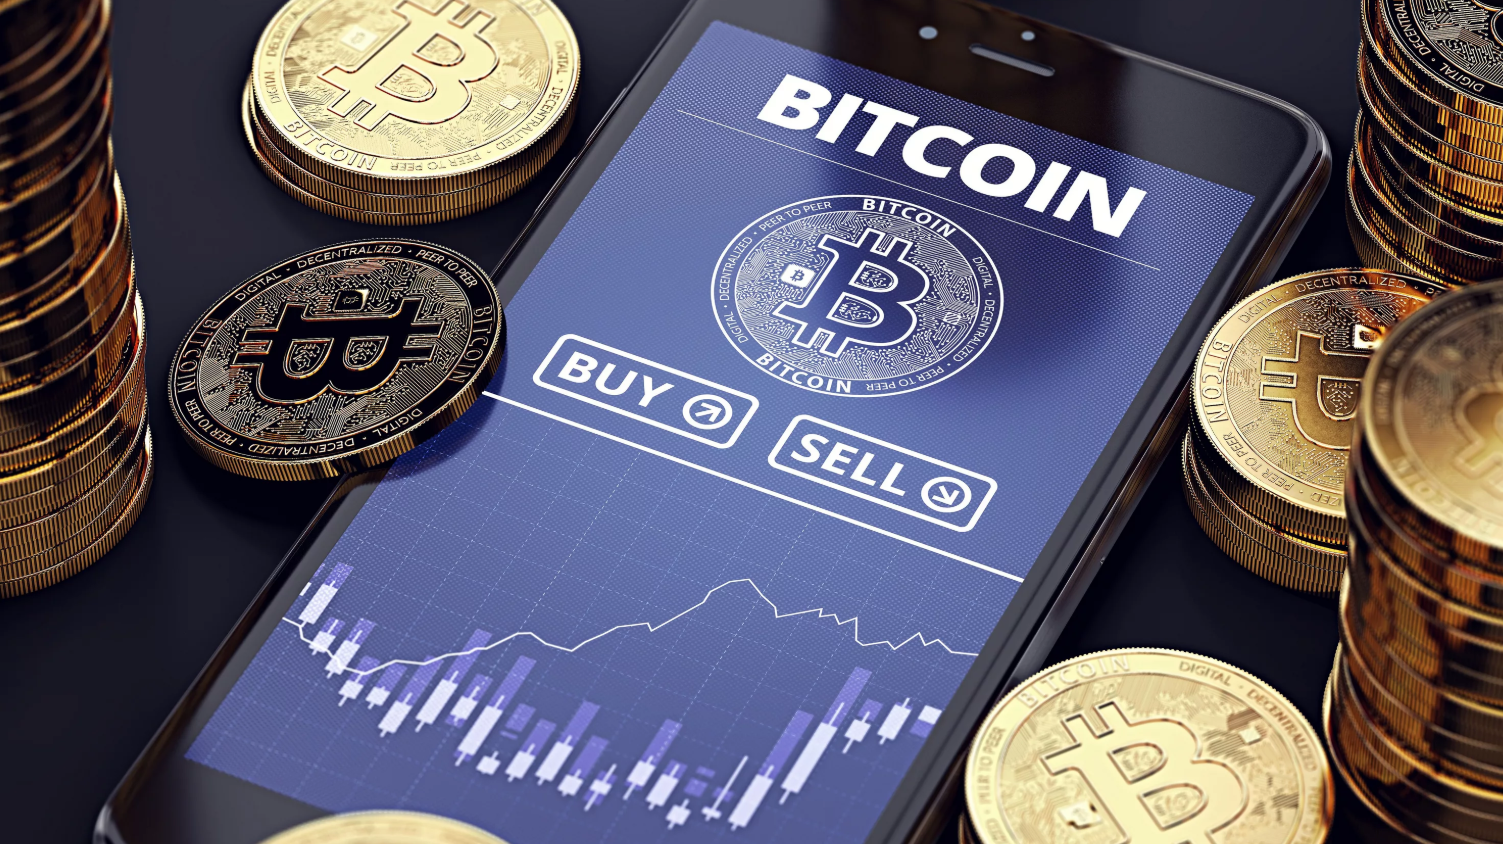 Bit-comment: Bitcoin lost 1%